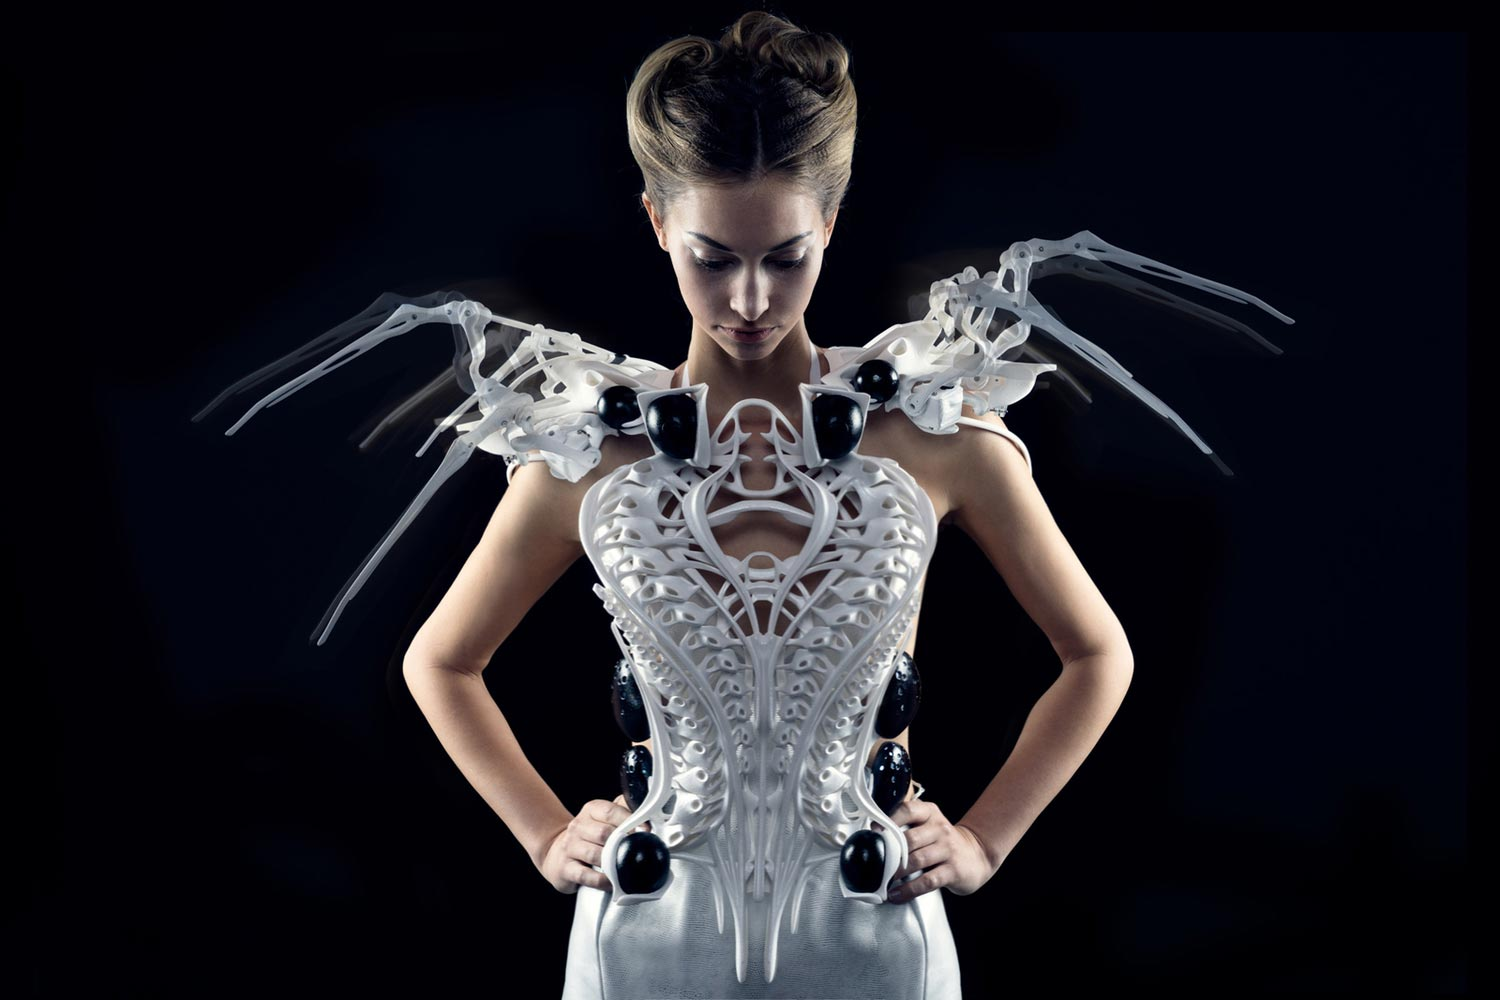 3D Printed Interactive Wearable